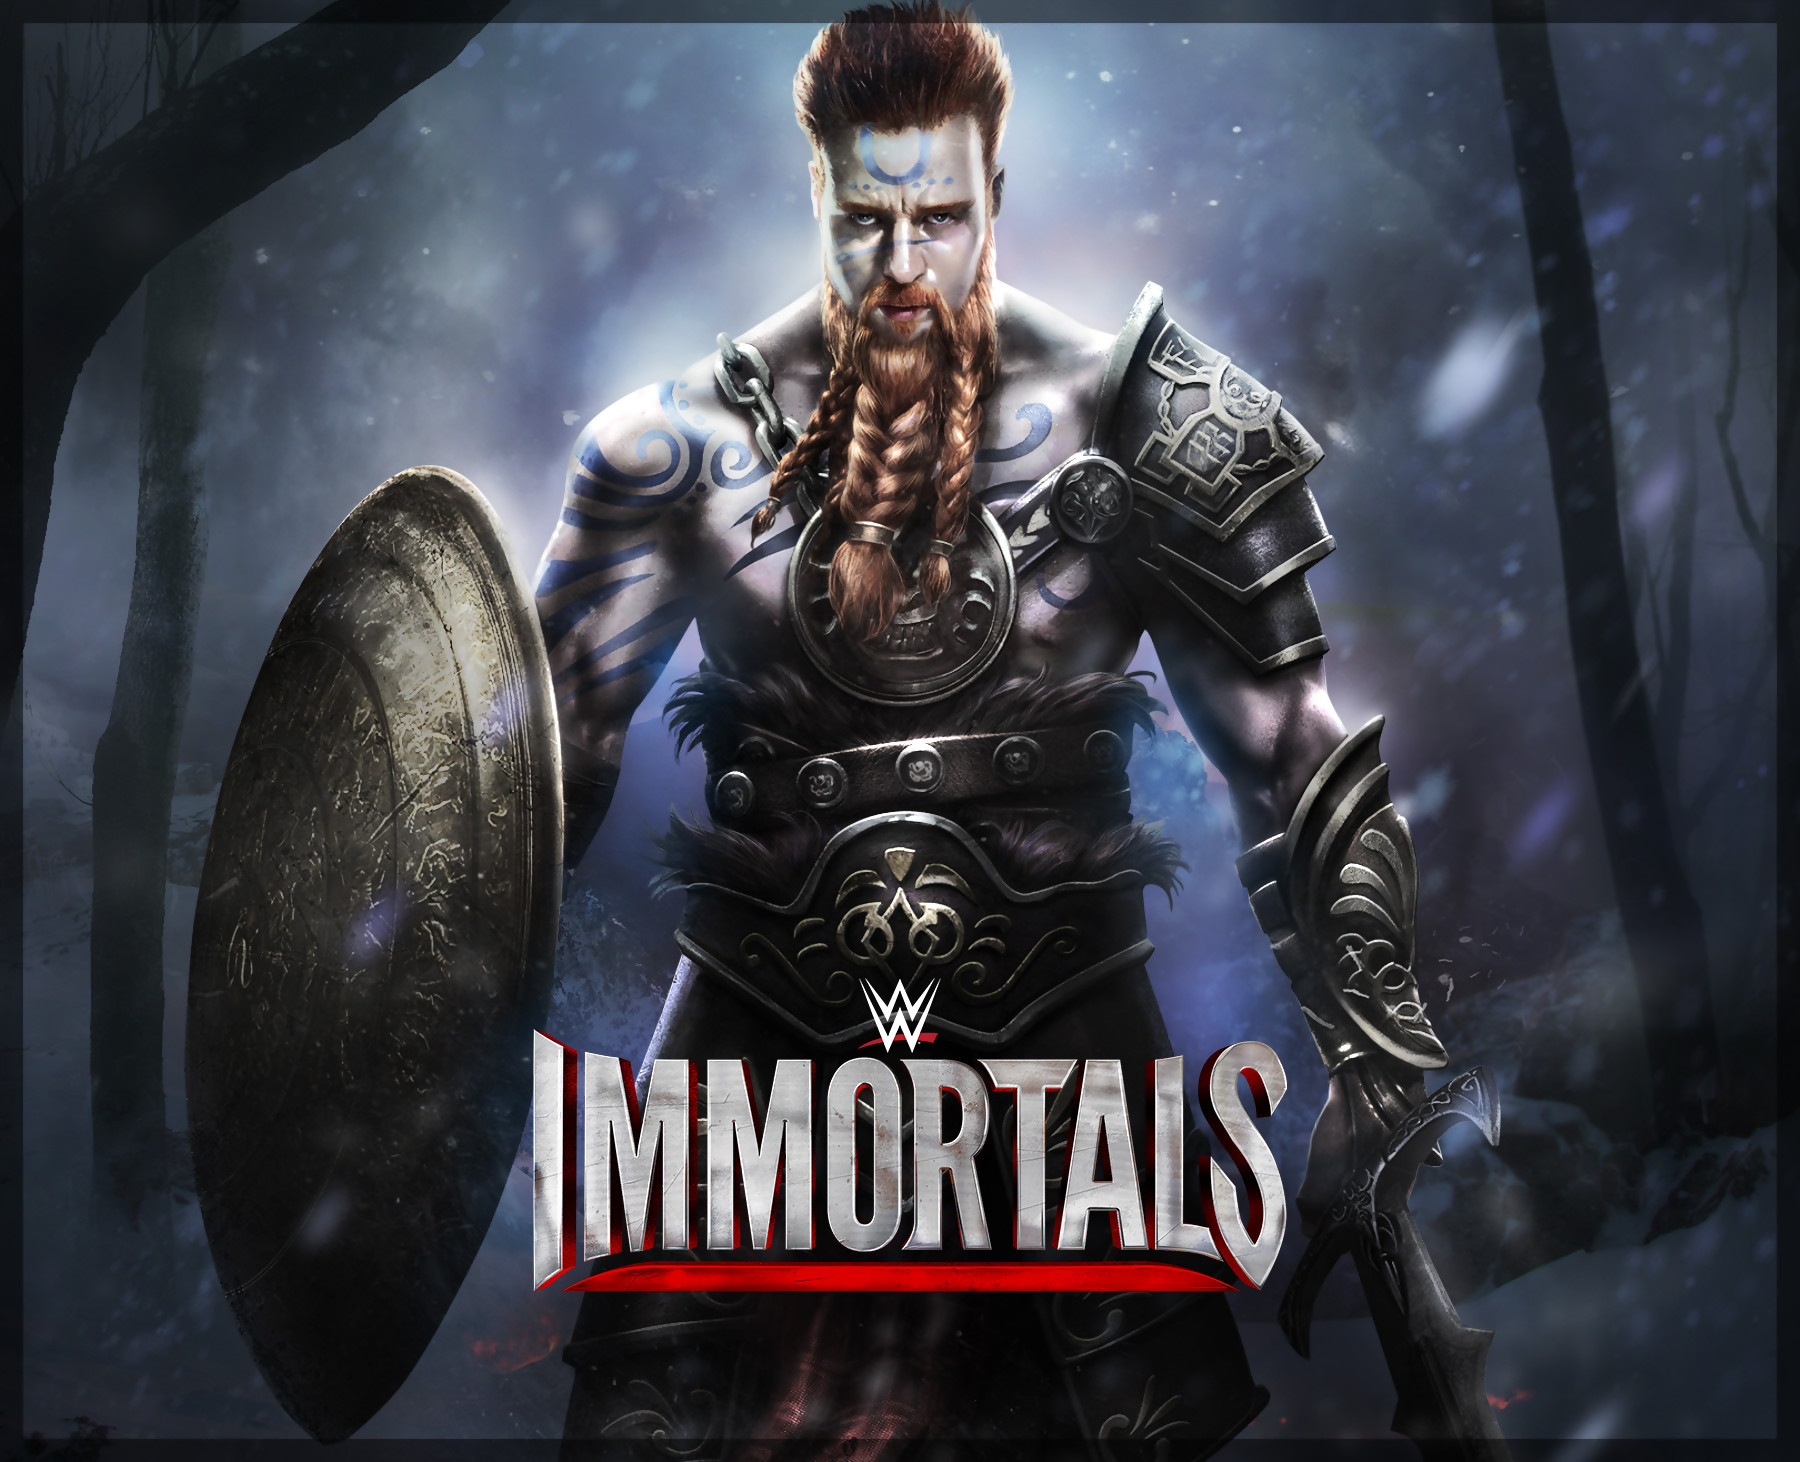 8 immortals wallpaper